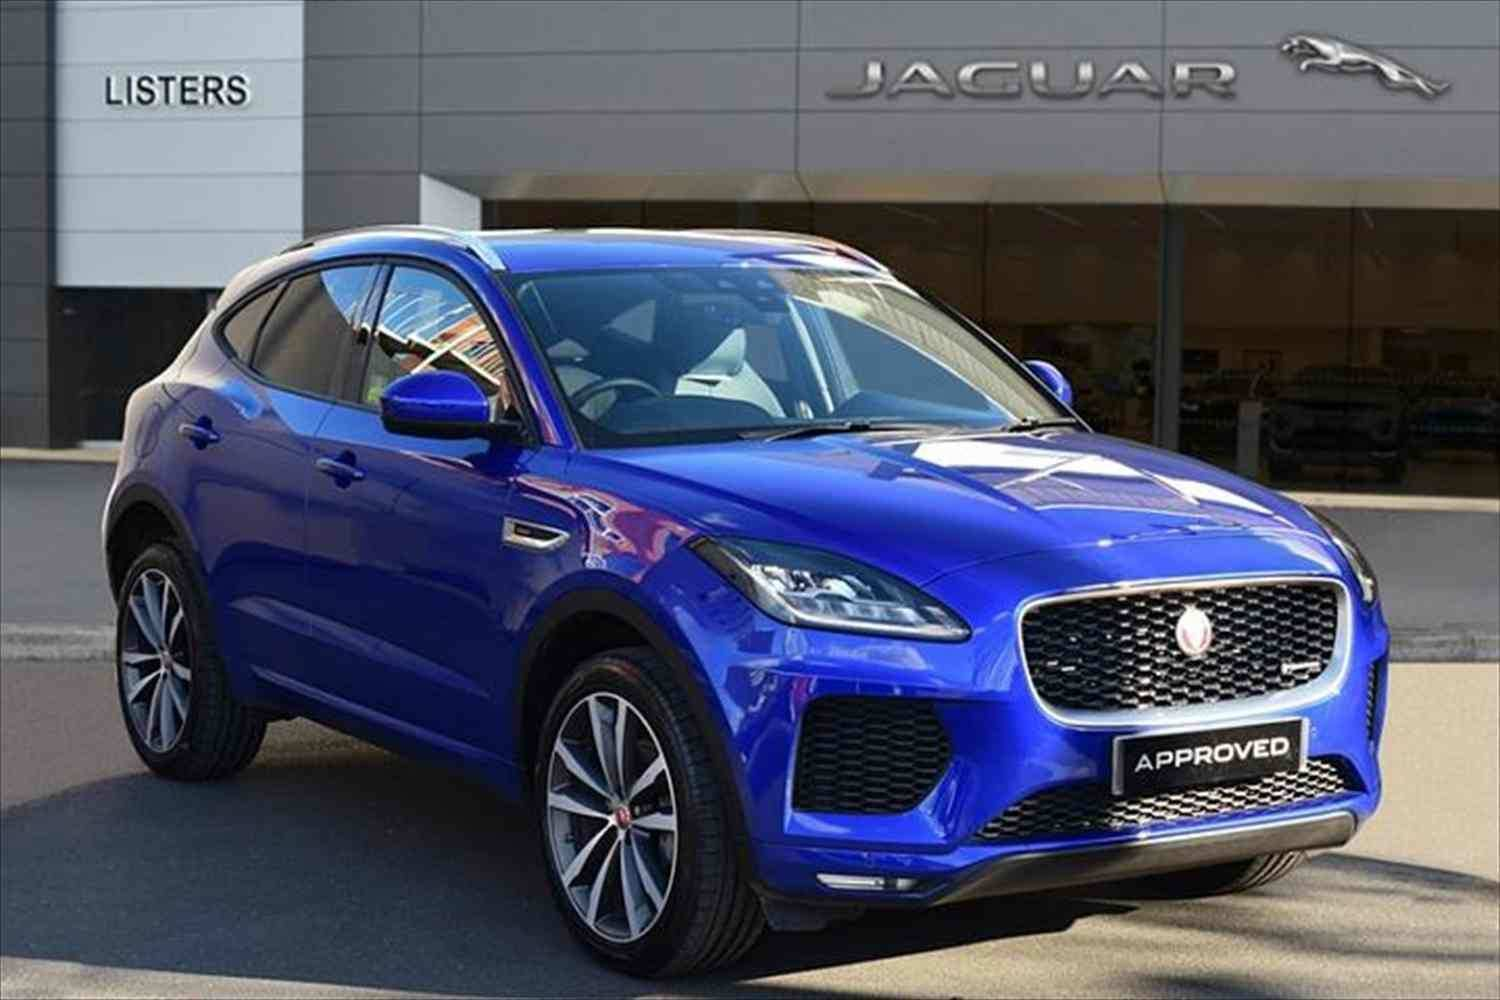 68 New Jaguar E Pace 2020 Interior